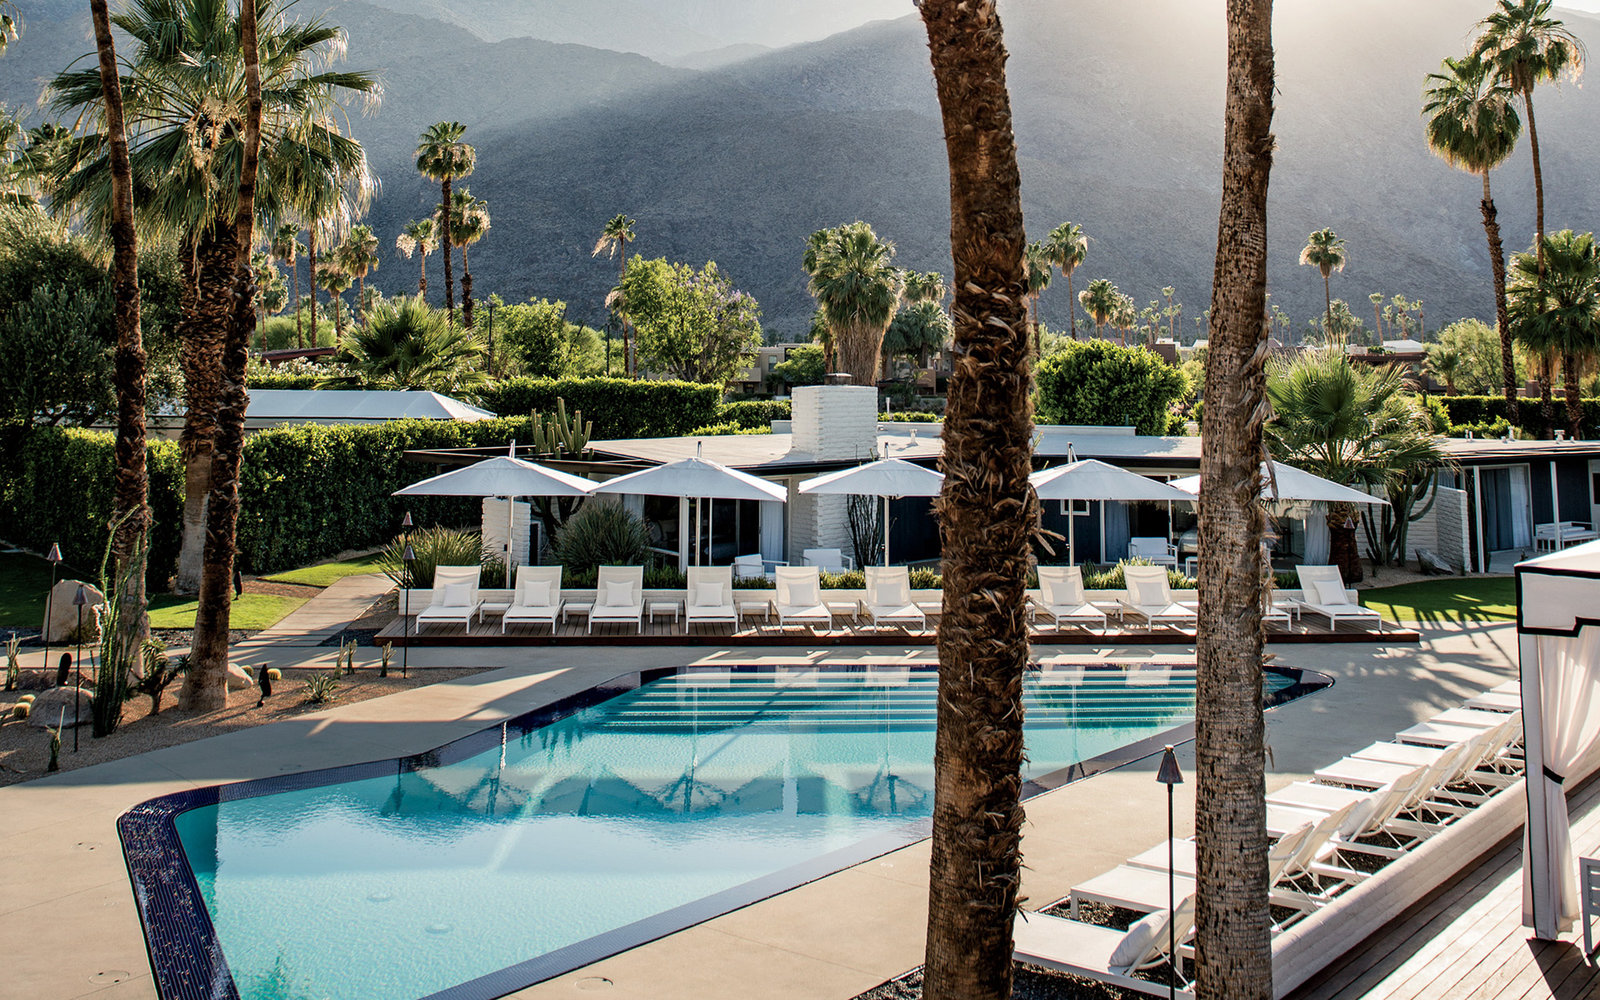 L'Horizon in Palm Springs, California